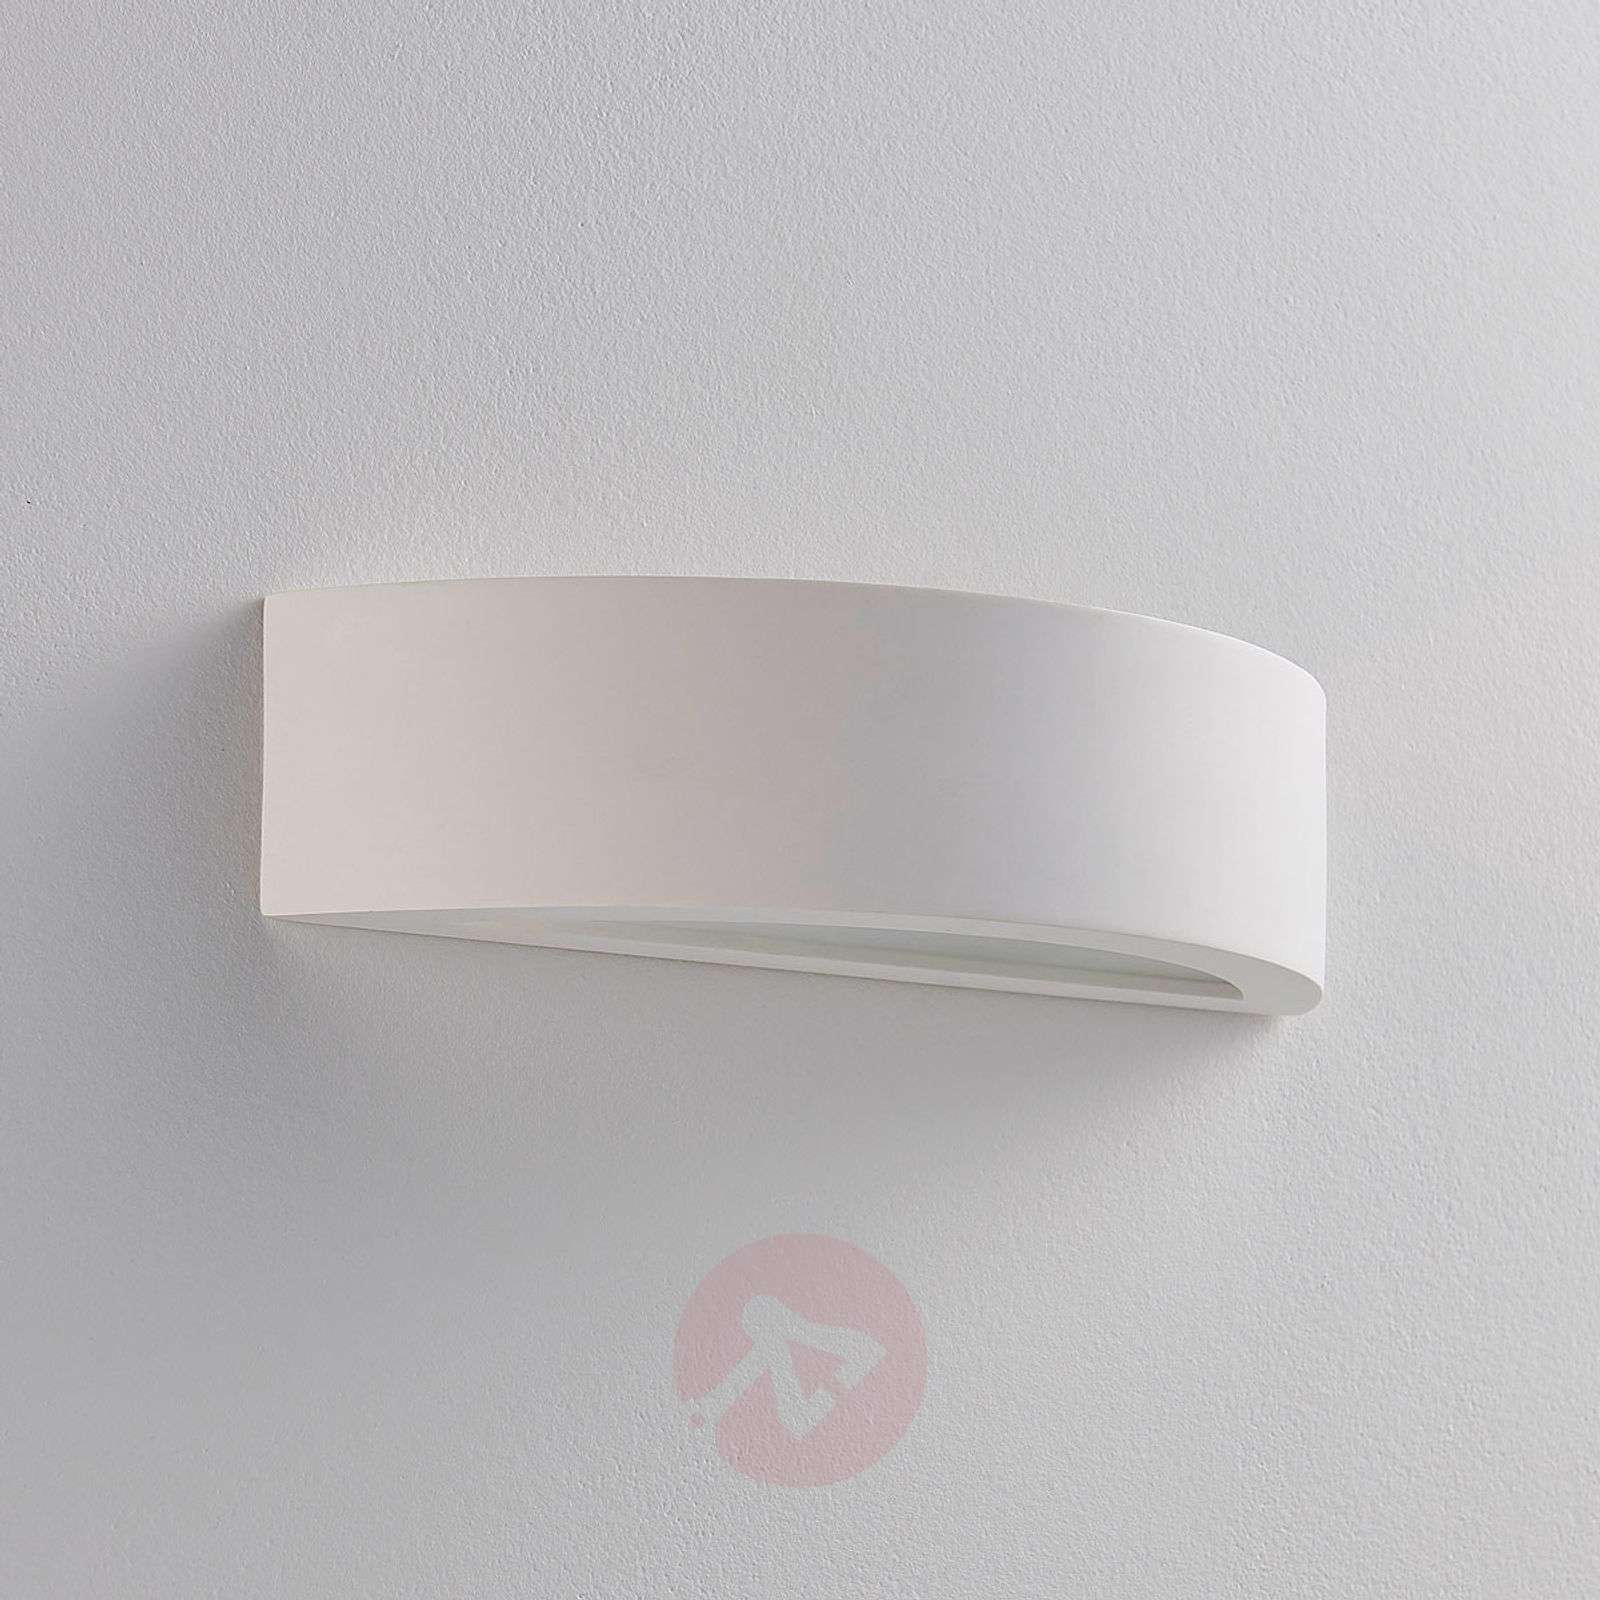 Semi-circ. plaster wall lamp Aurel, Easydim LED-9621321-01